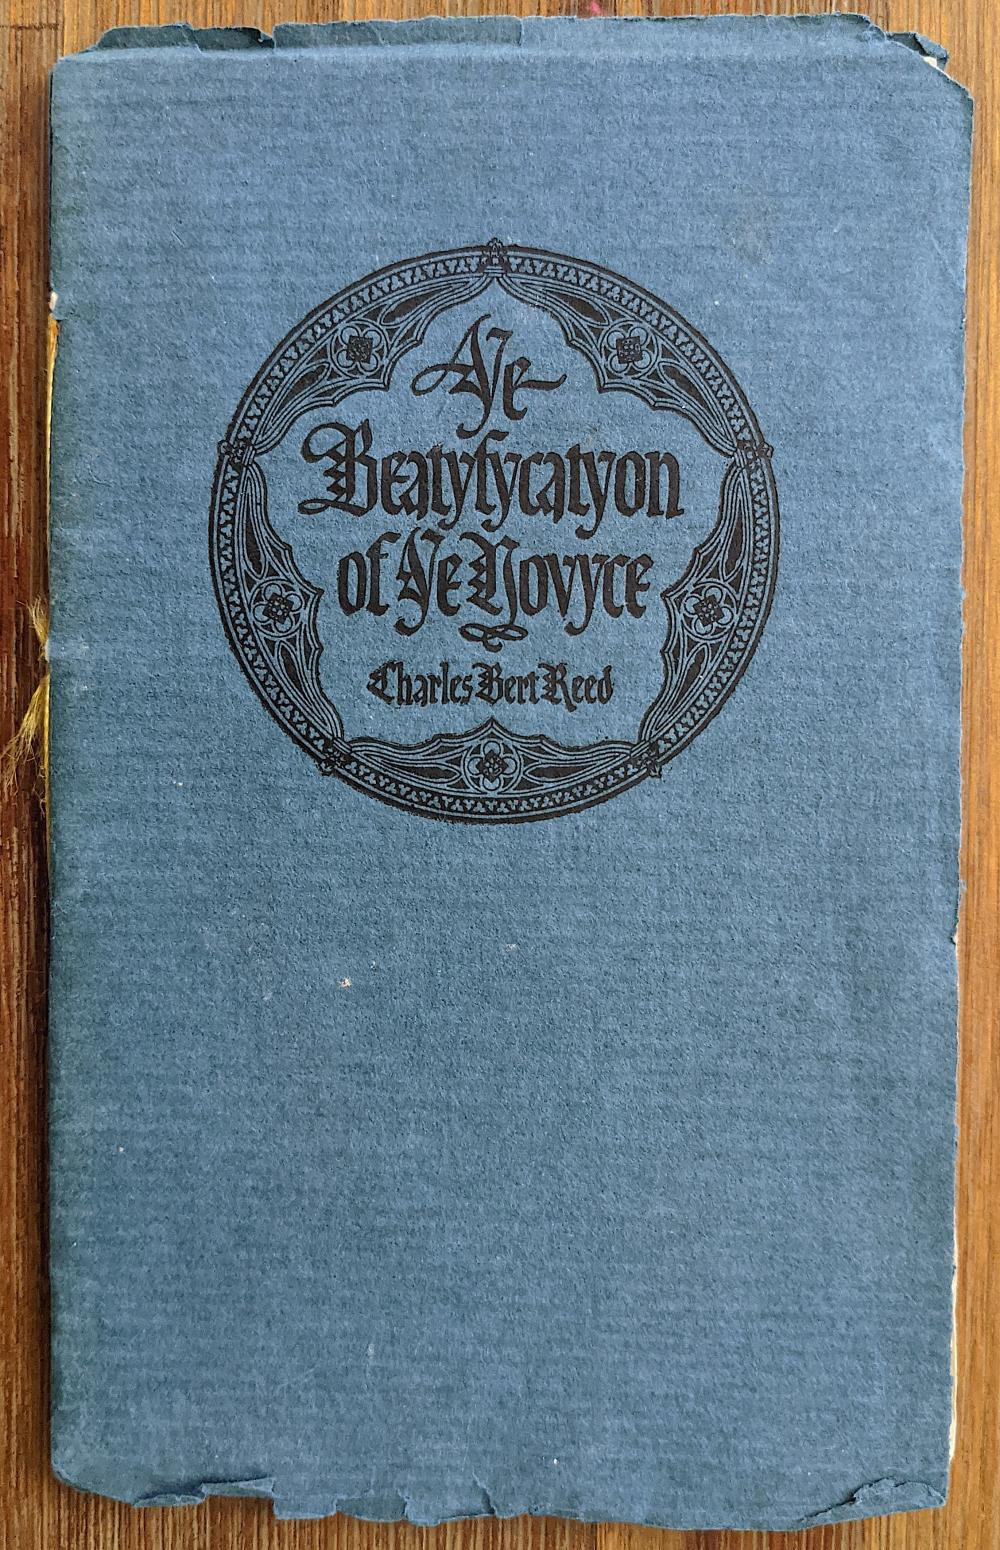 Scarce Private Press Book C.R. by WILL RANSOM, 1923 Illustrated.